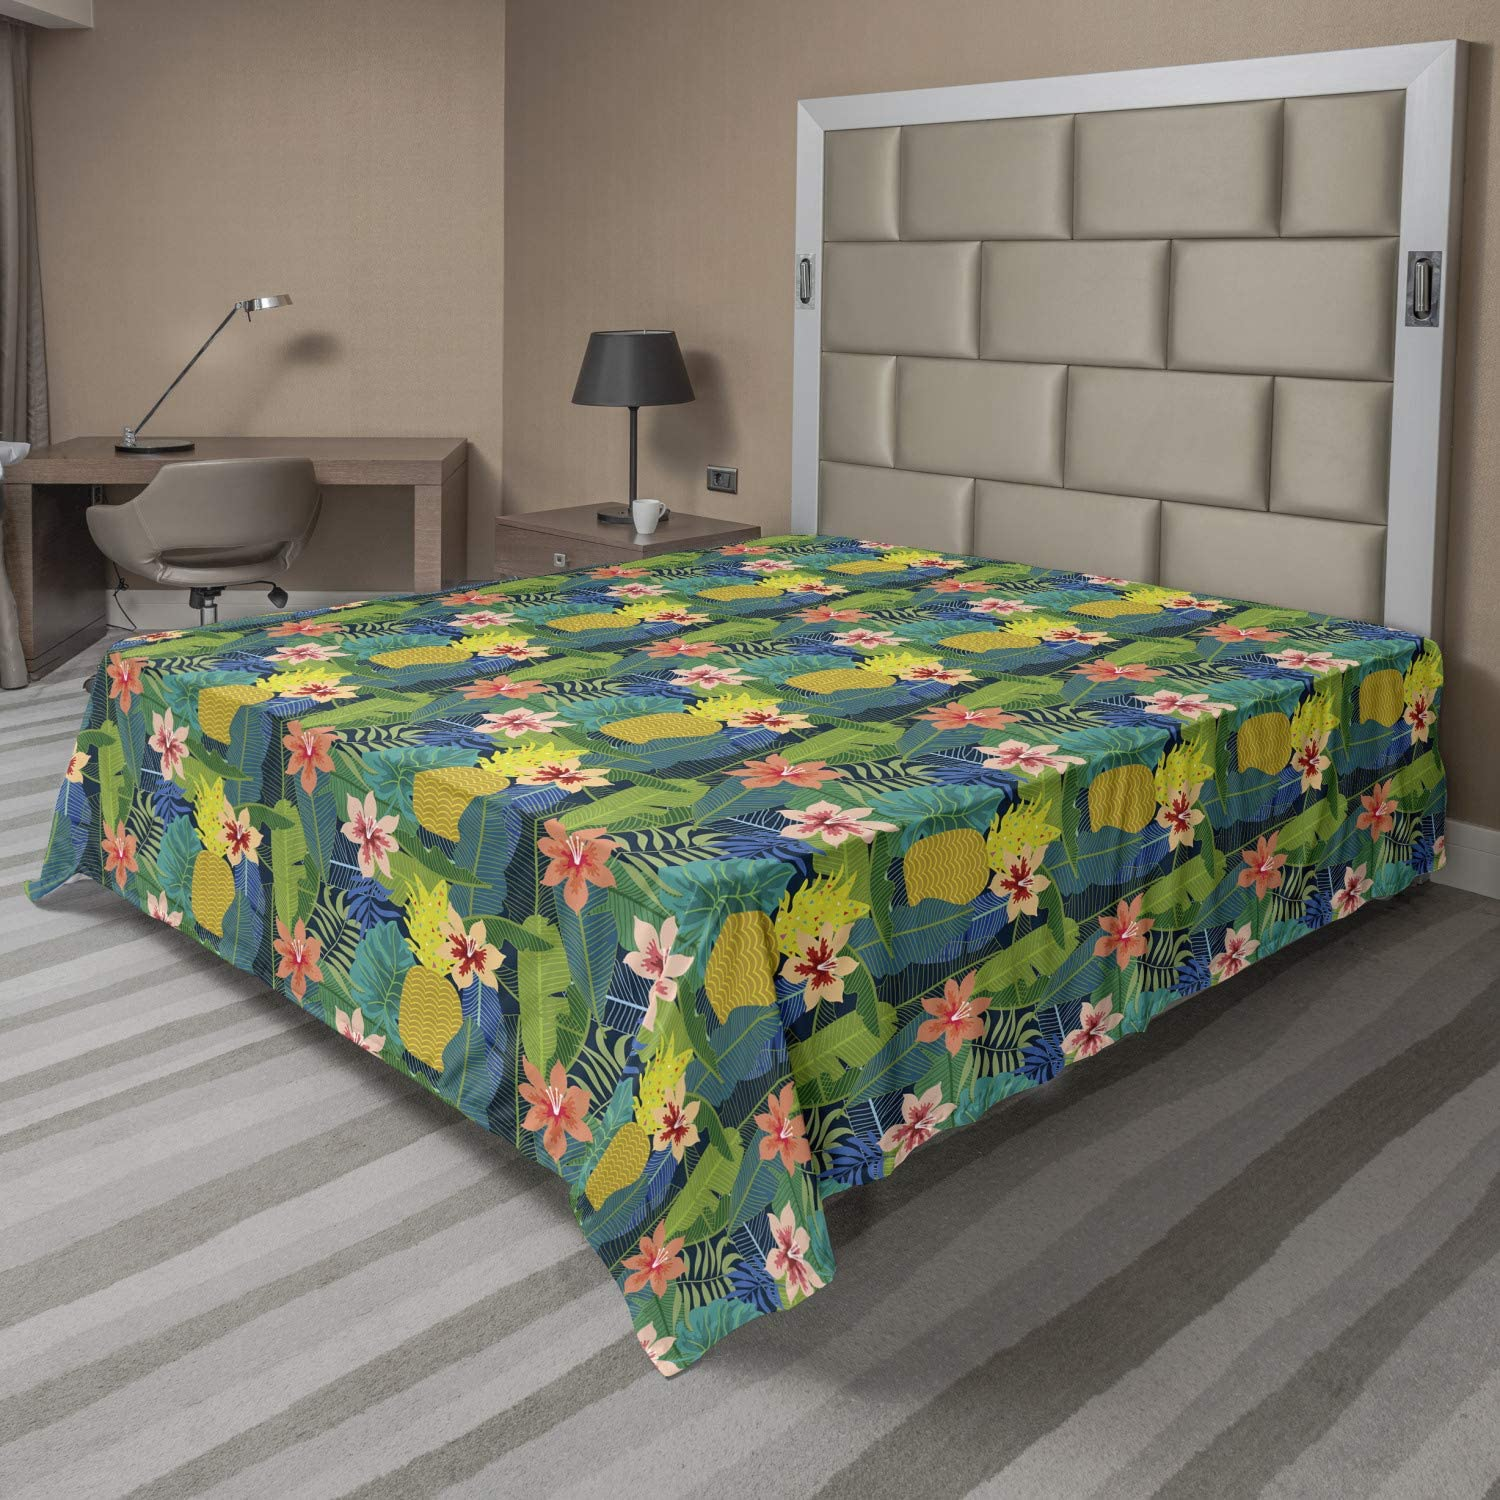 Ambesonne Floral Branded goods Same day shipping Flat Sheet Colorful Plantatio Design Caribbean